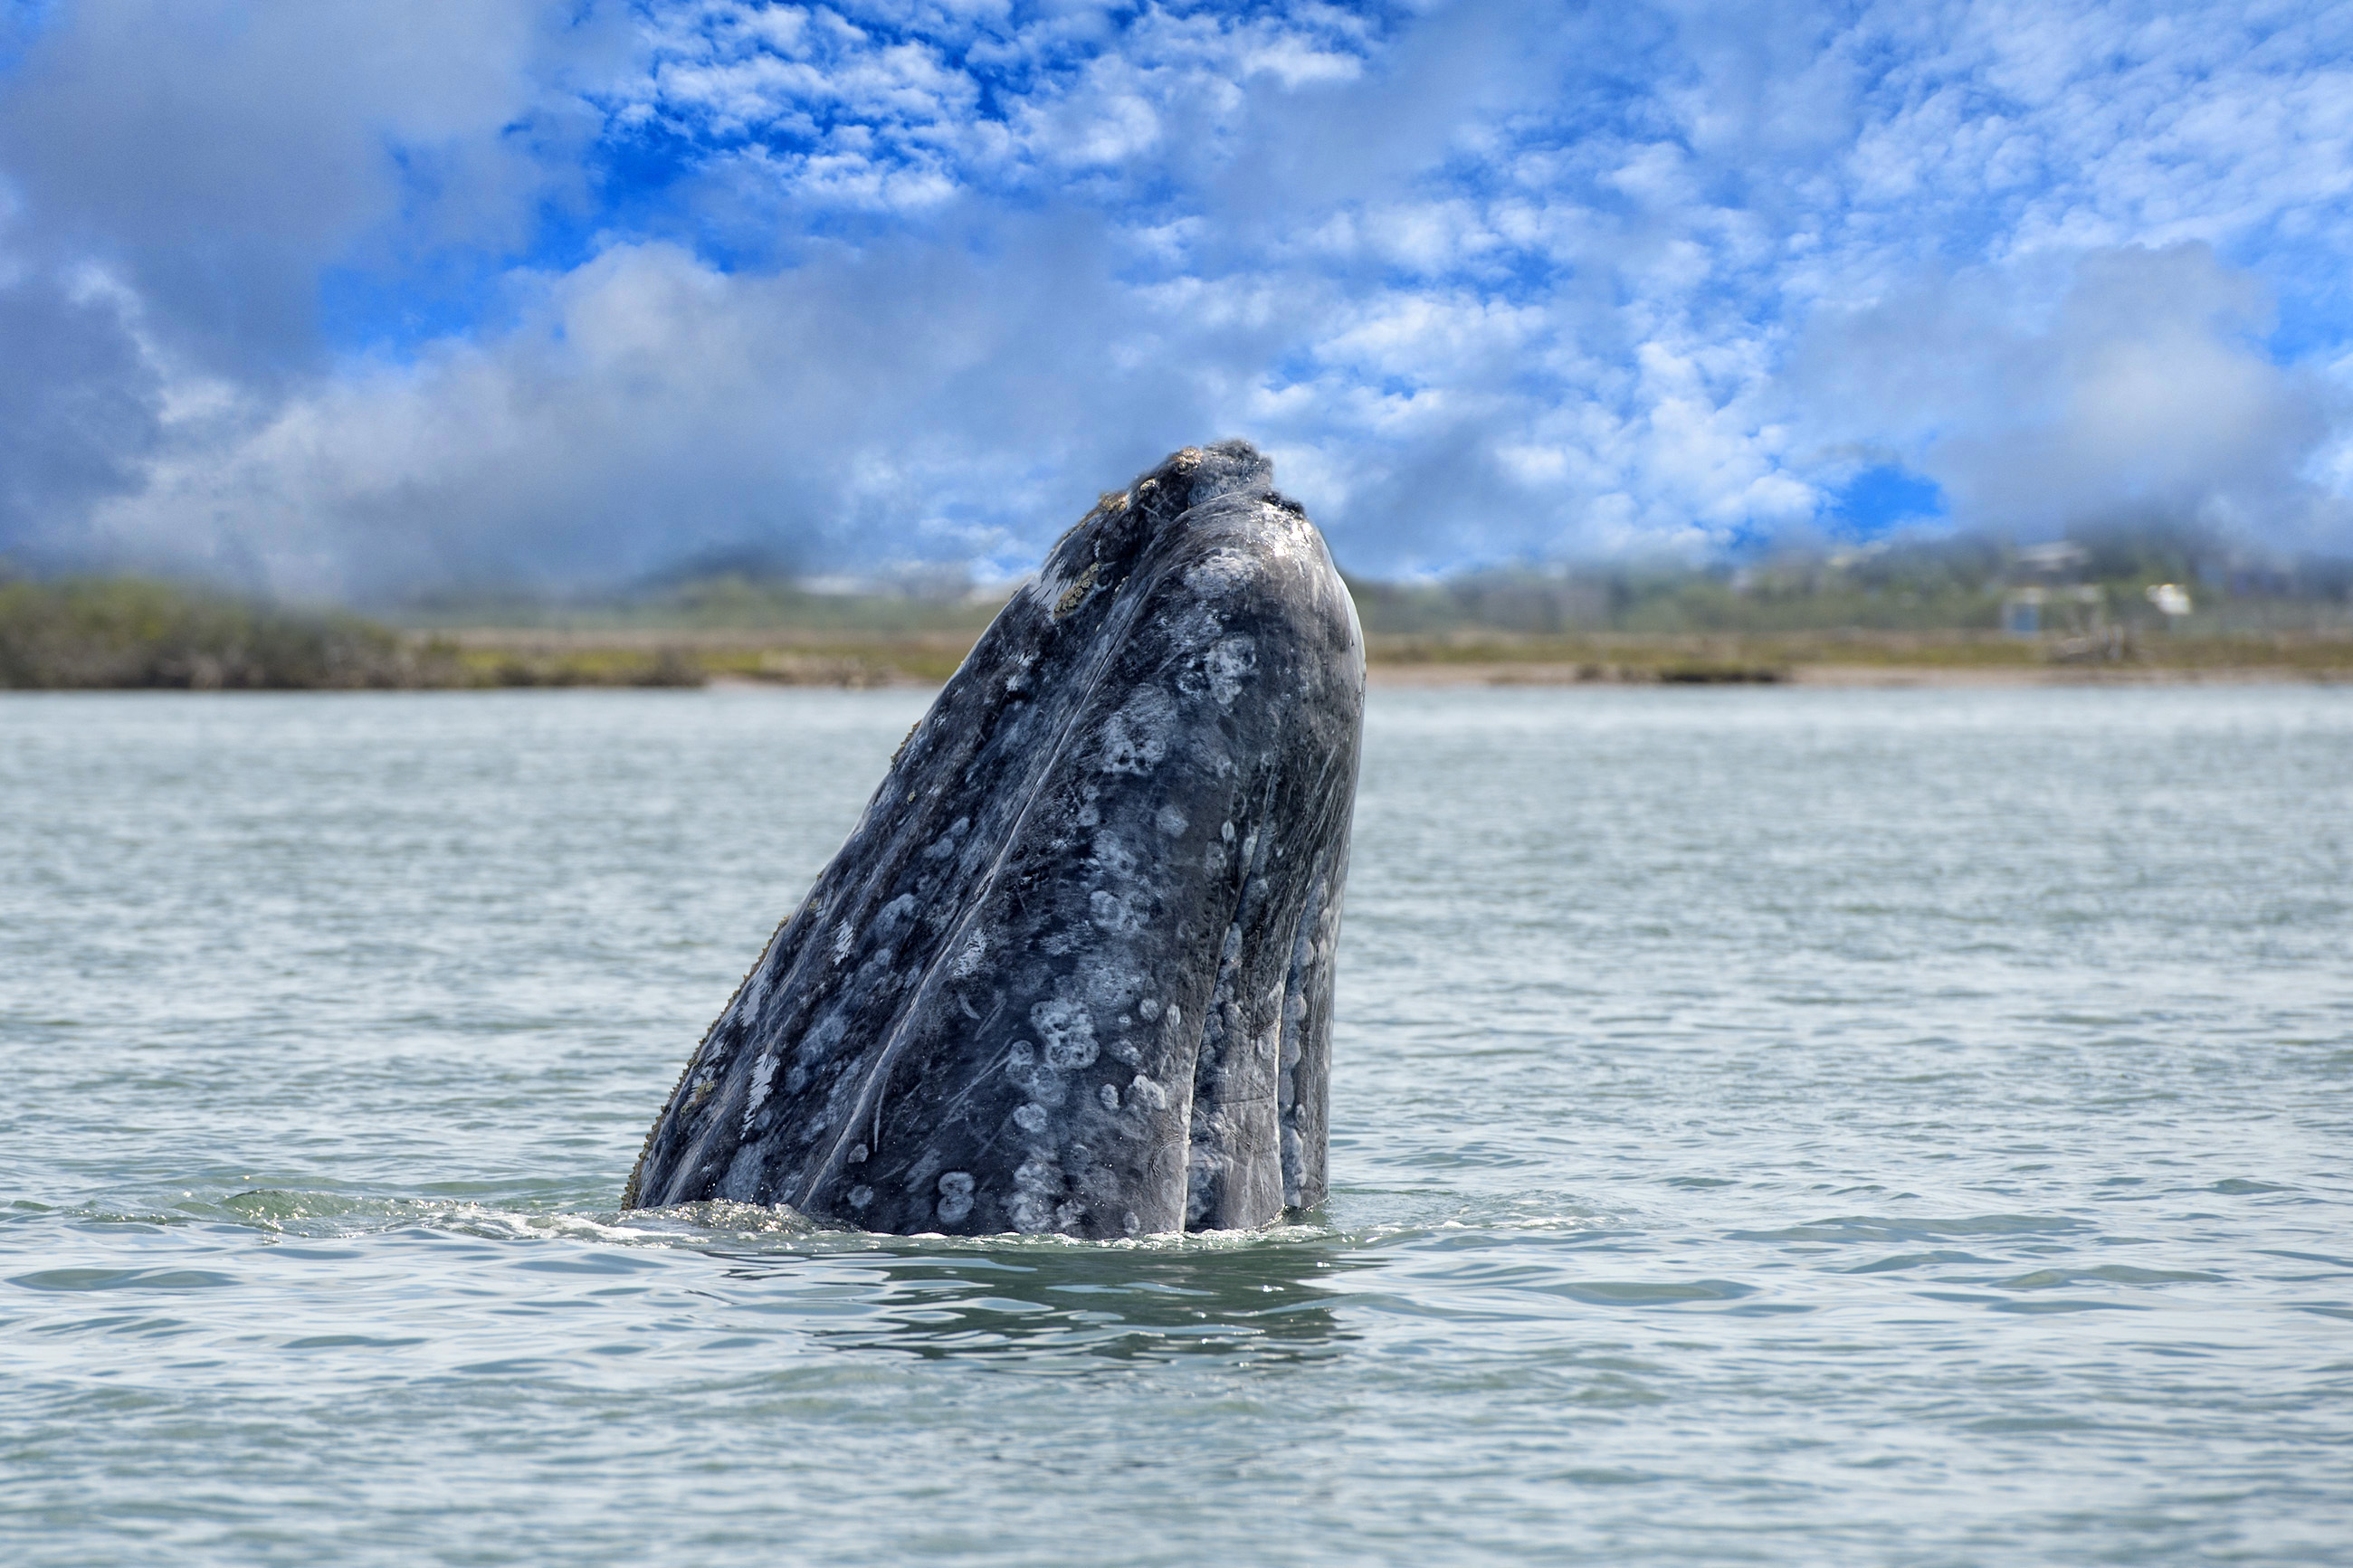 A gray whale mother surfacing in the Pacific Ocean.